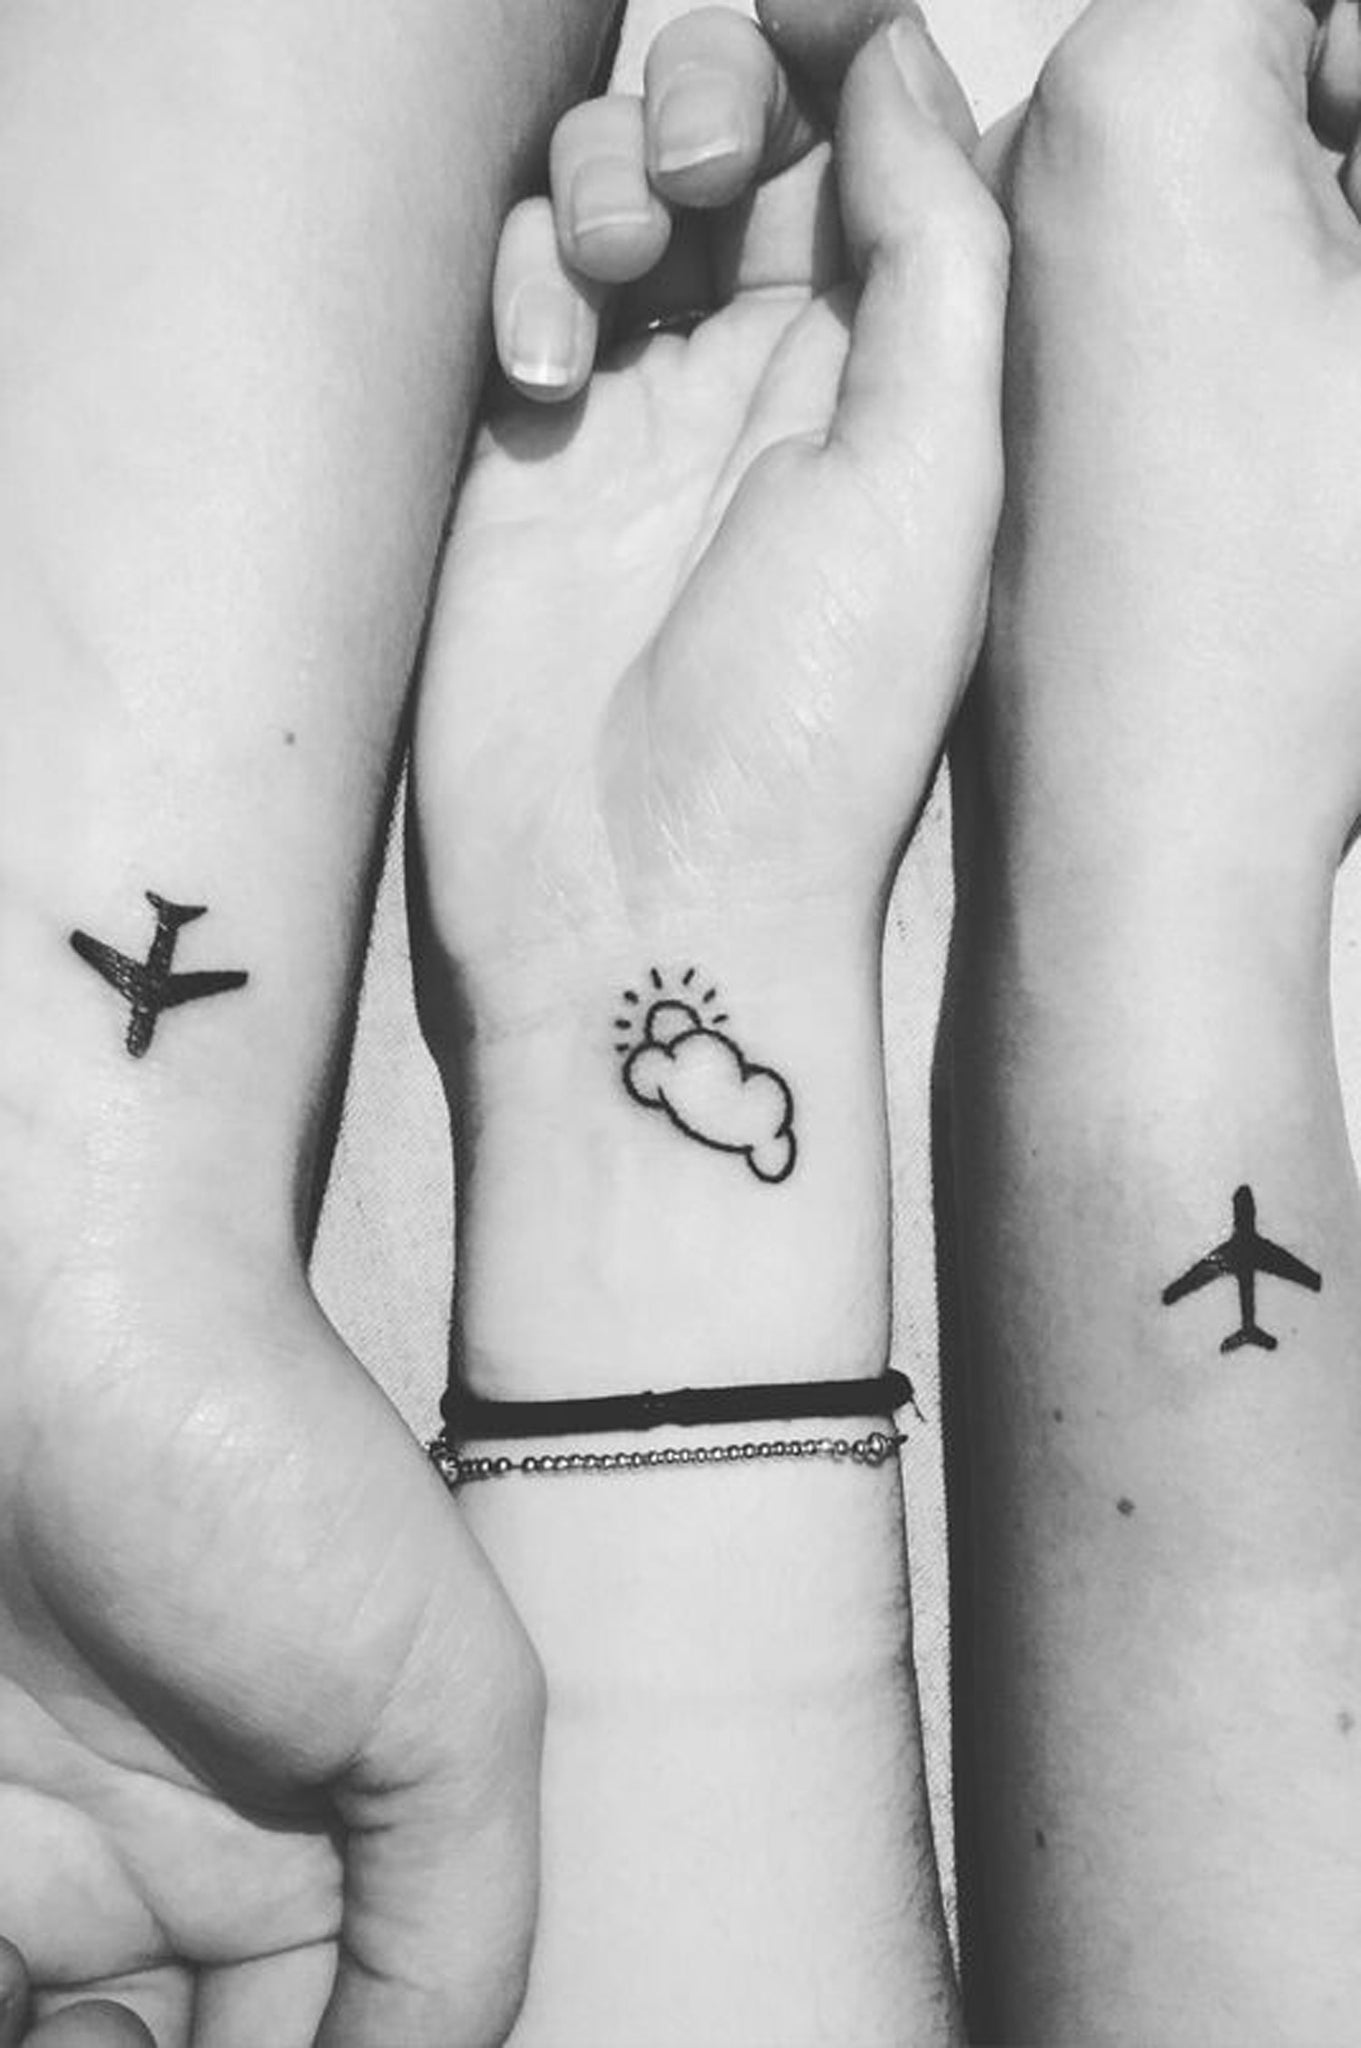 30 Free and Simple Small Tattoo Ideas for the Minimalist